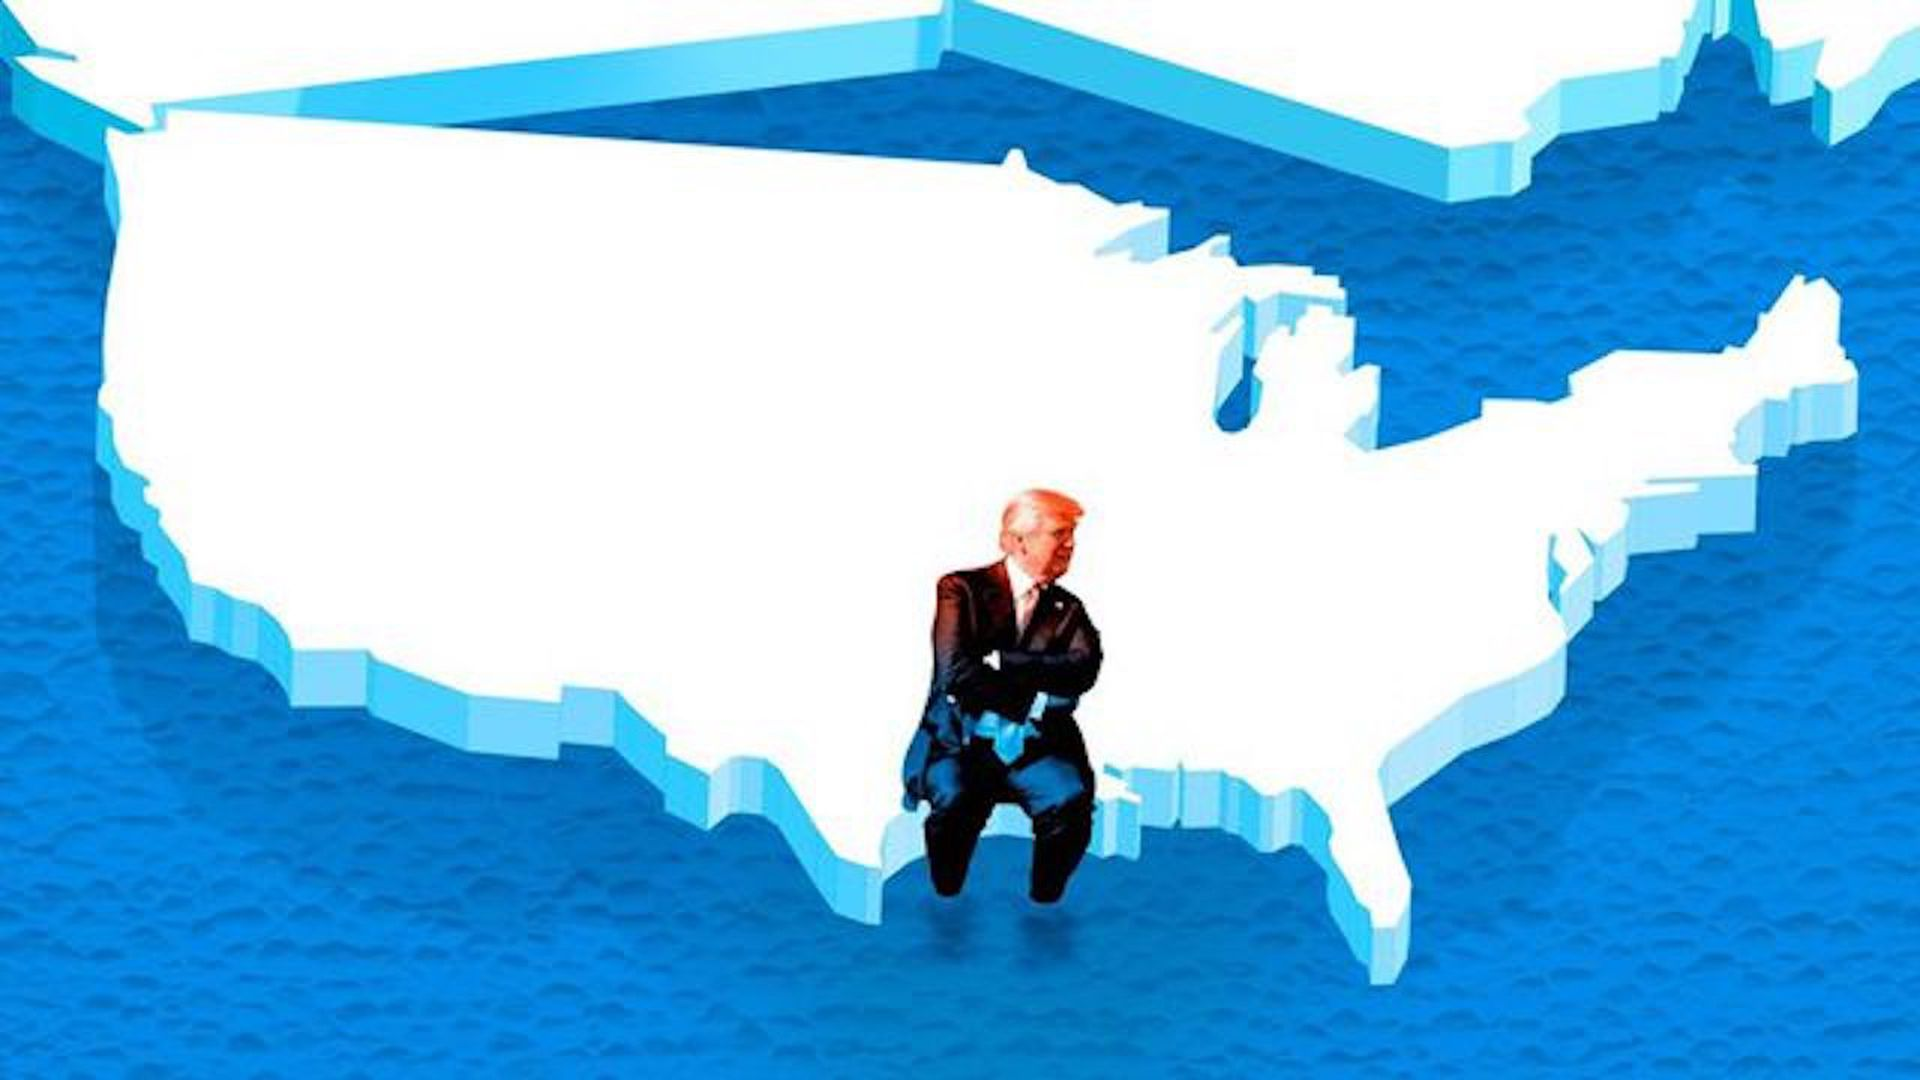 Illustration of Trump sitting on an ice version of the U.S. that's floating away.